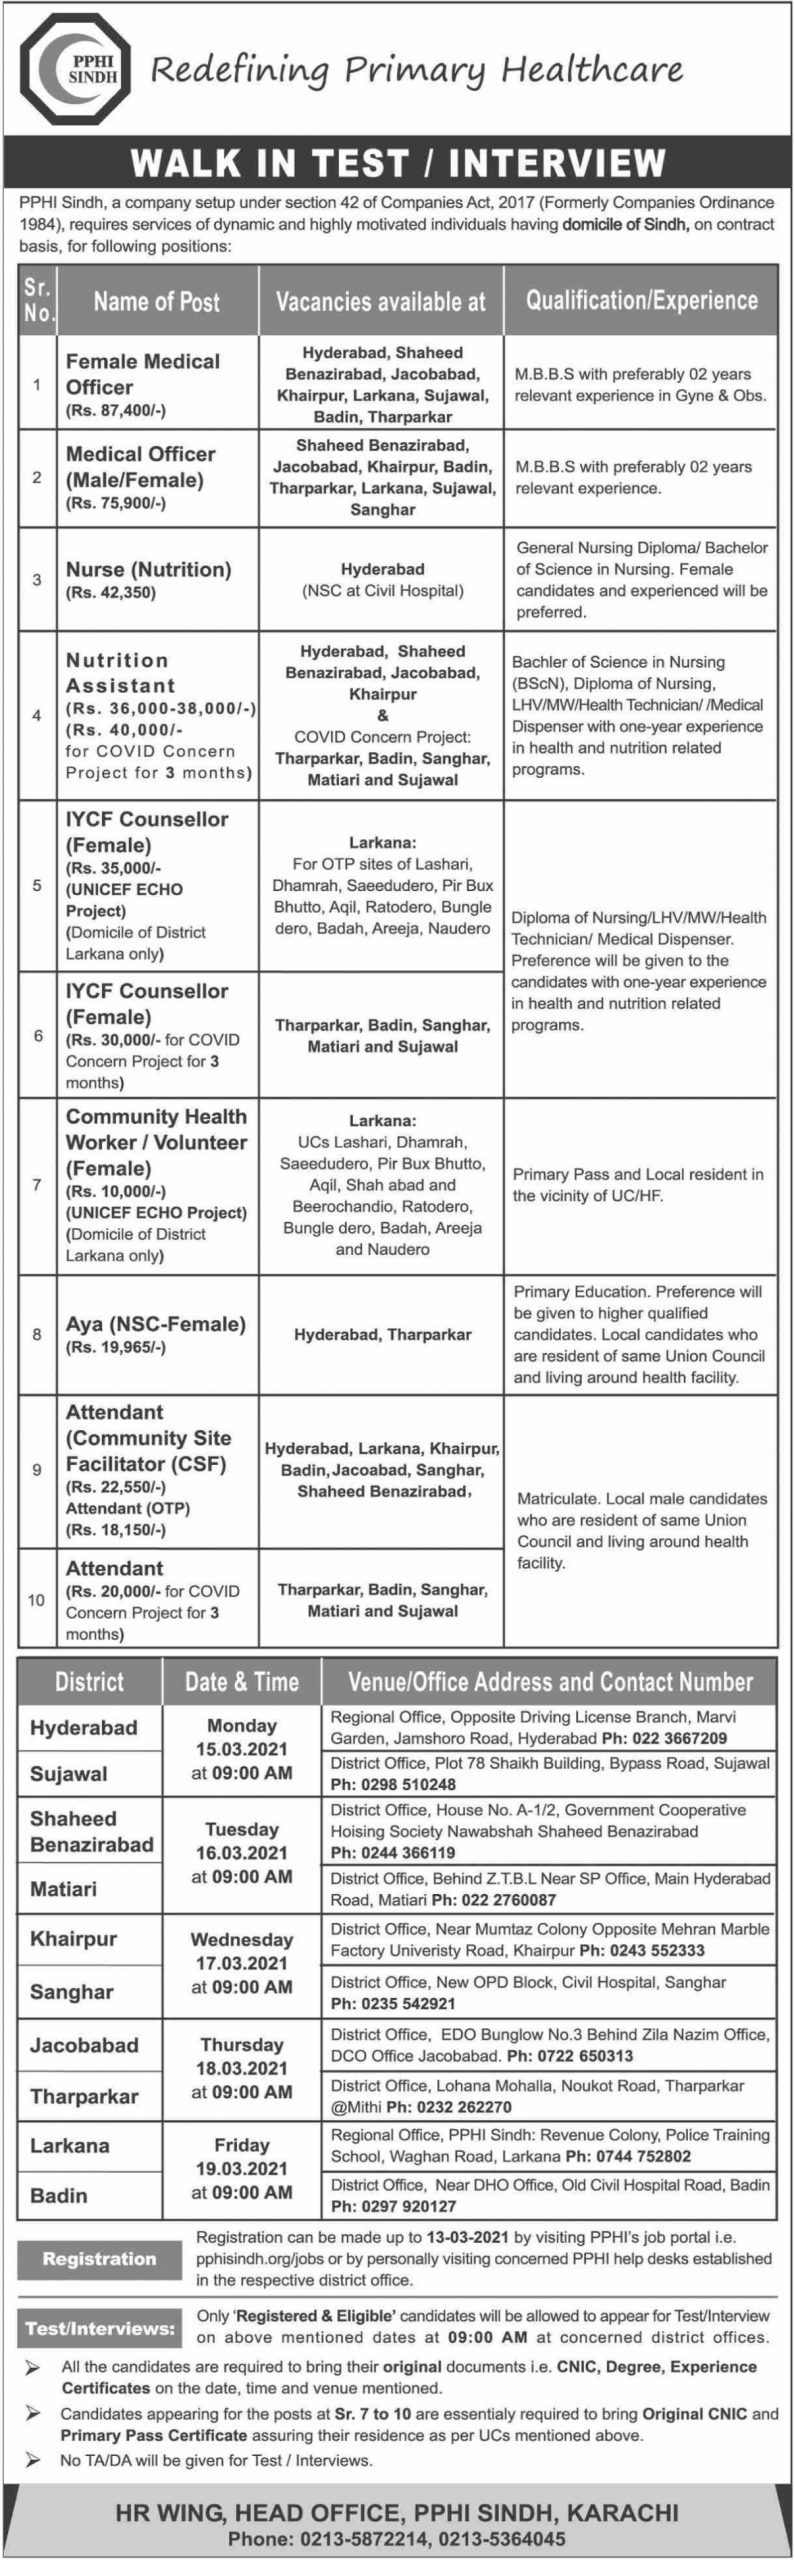 PPHI Sindh Jobs March 2021